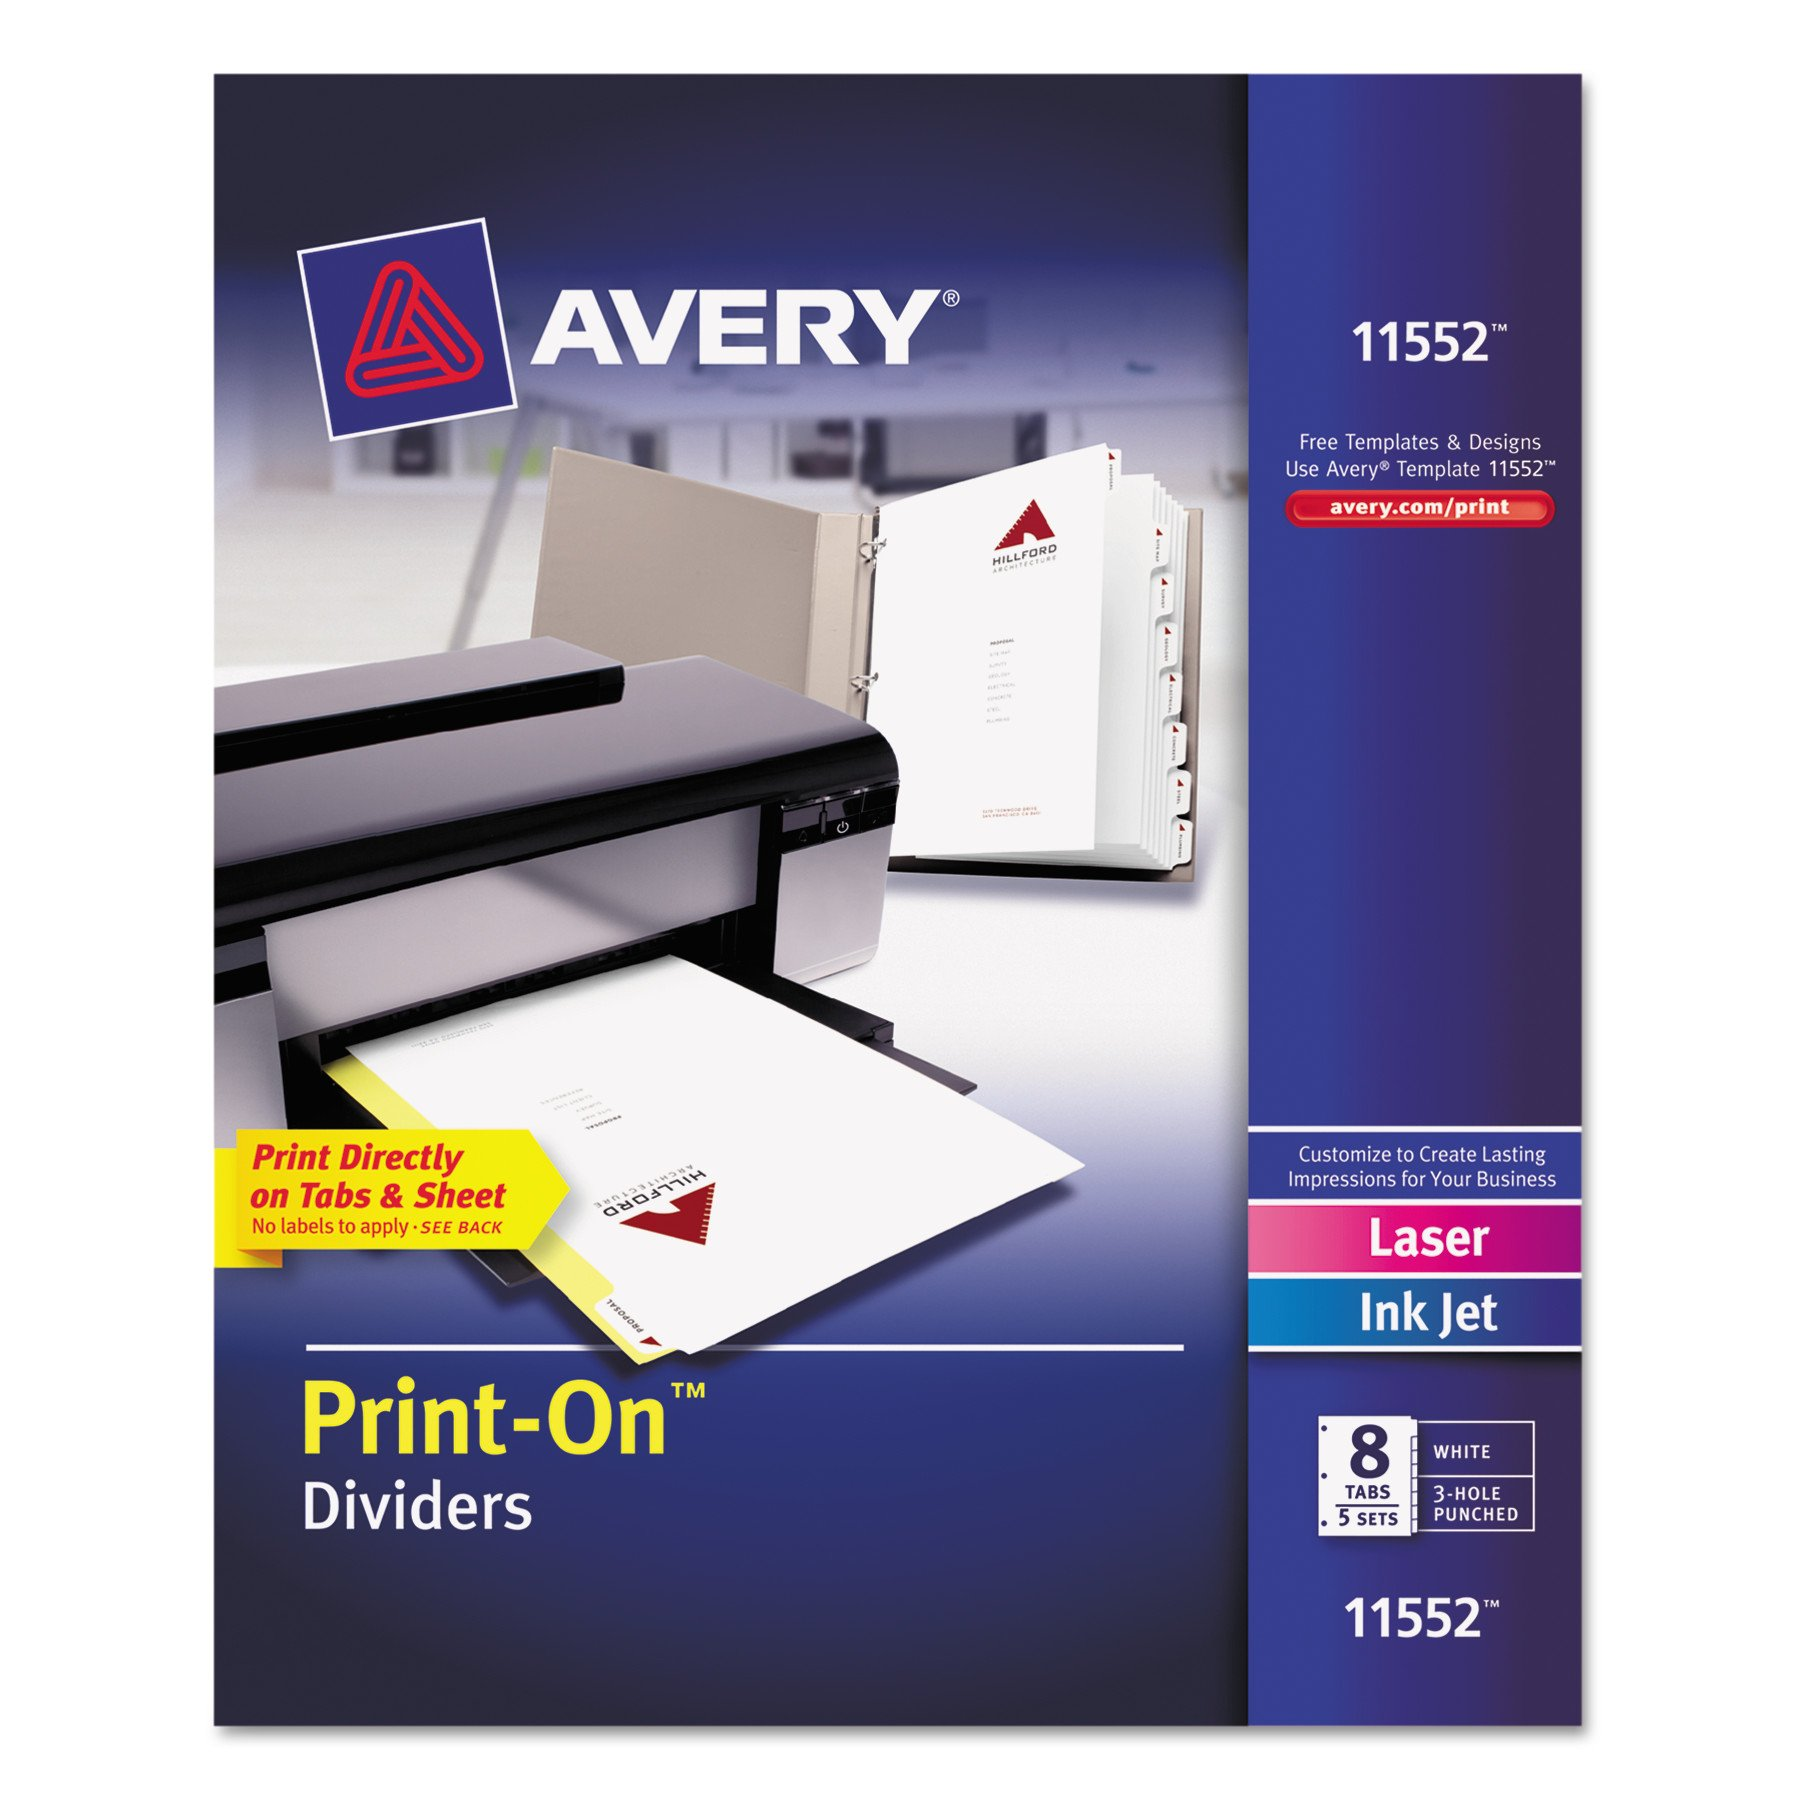 Avery Print-On Dividers, White, 8 Tabs, 5 Sets (11552) by Avery